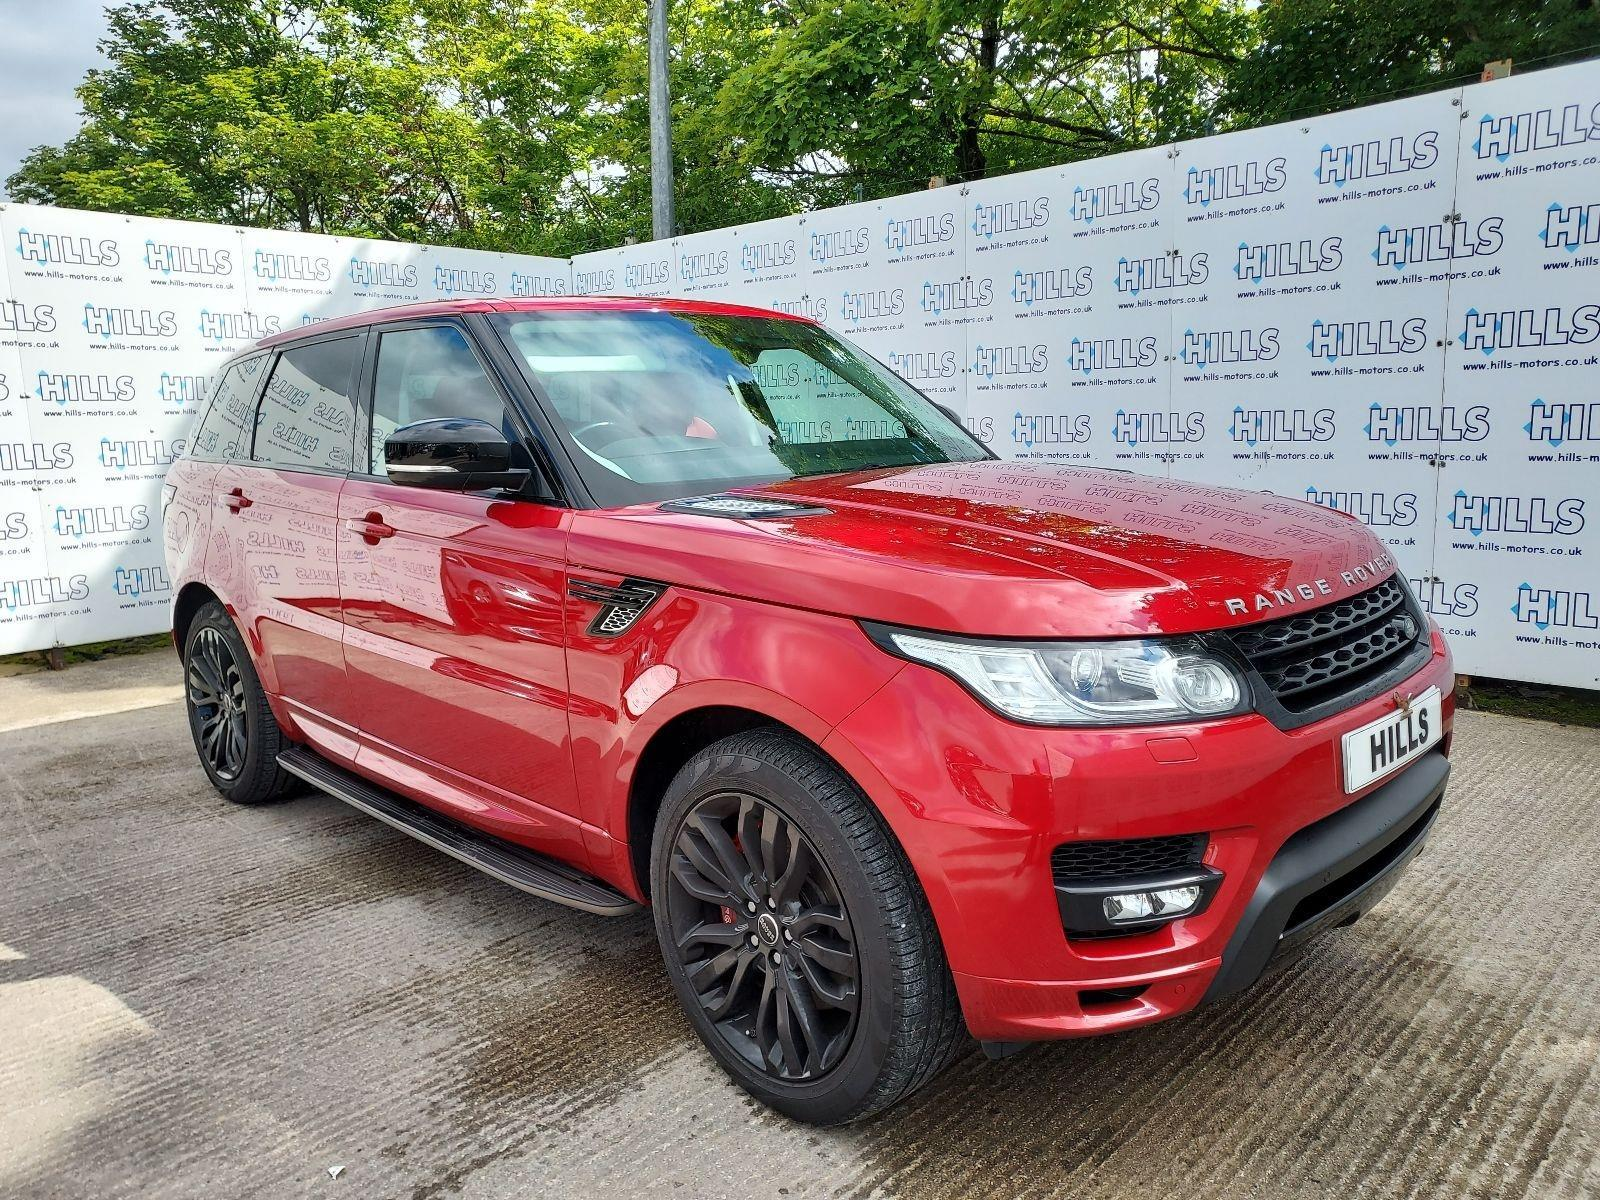 2015 Land Rover Range Rover Sport SDV6 AUTOBIOGRAPHY DYNAMIC 2993cc TURBO Diesel Automatic 8 Speed ESTATE